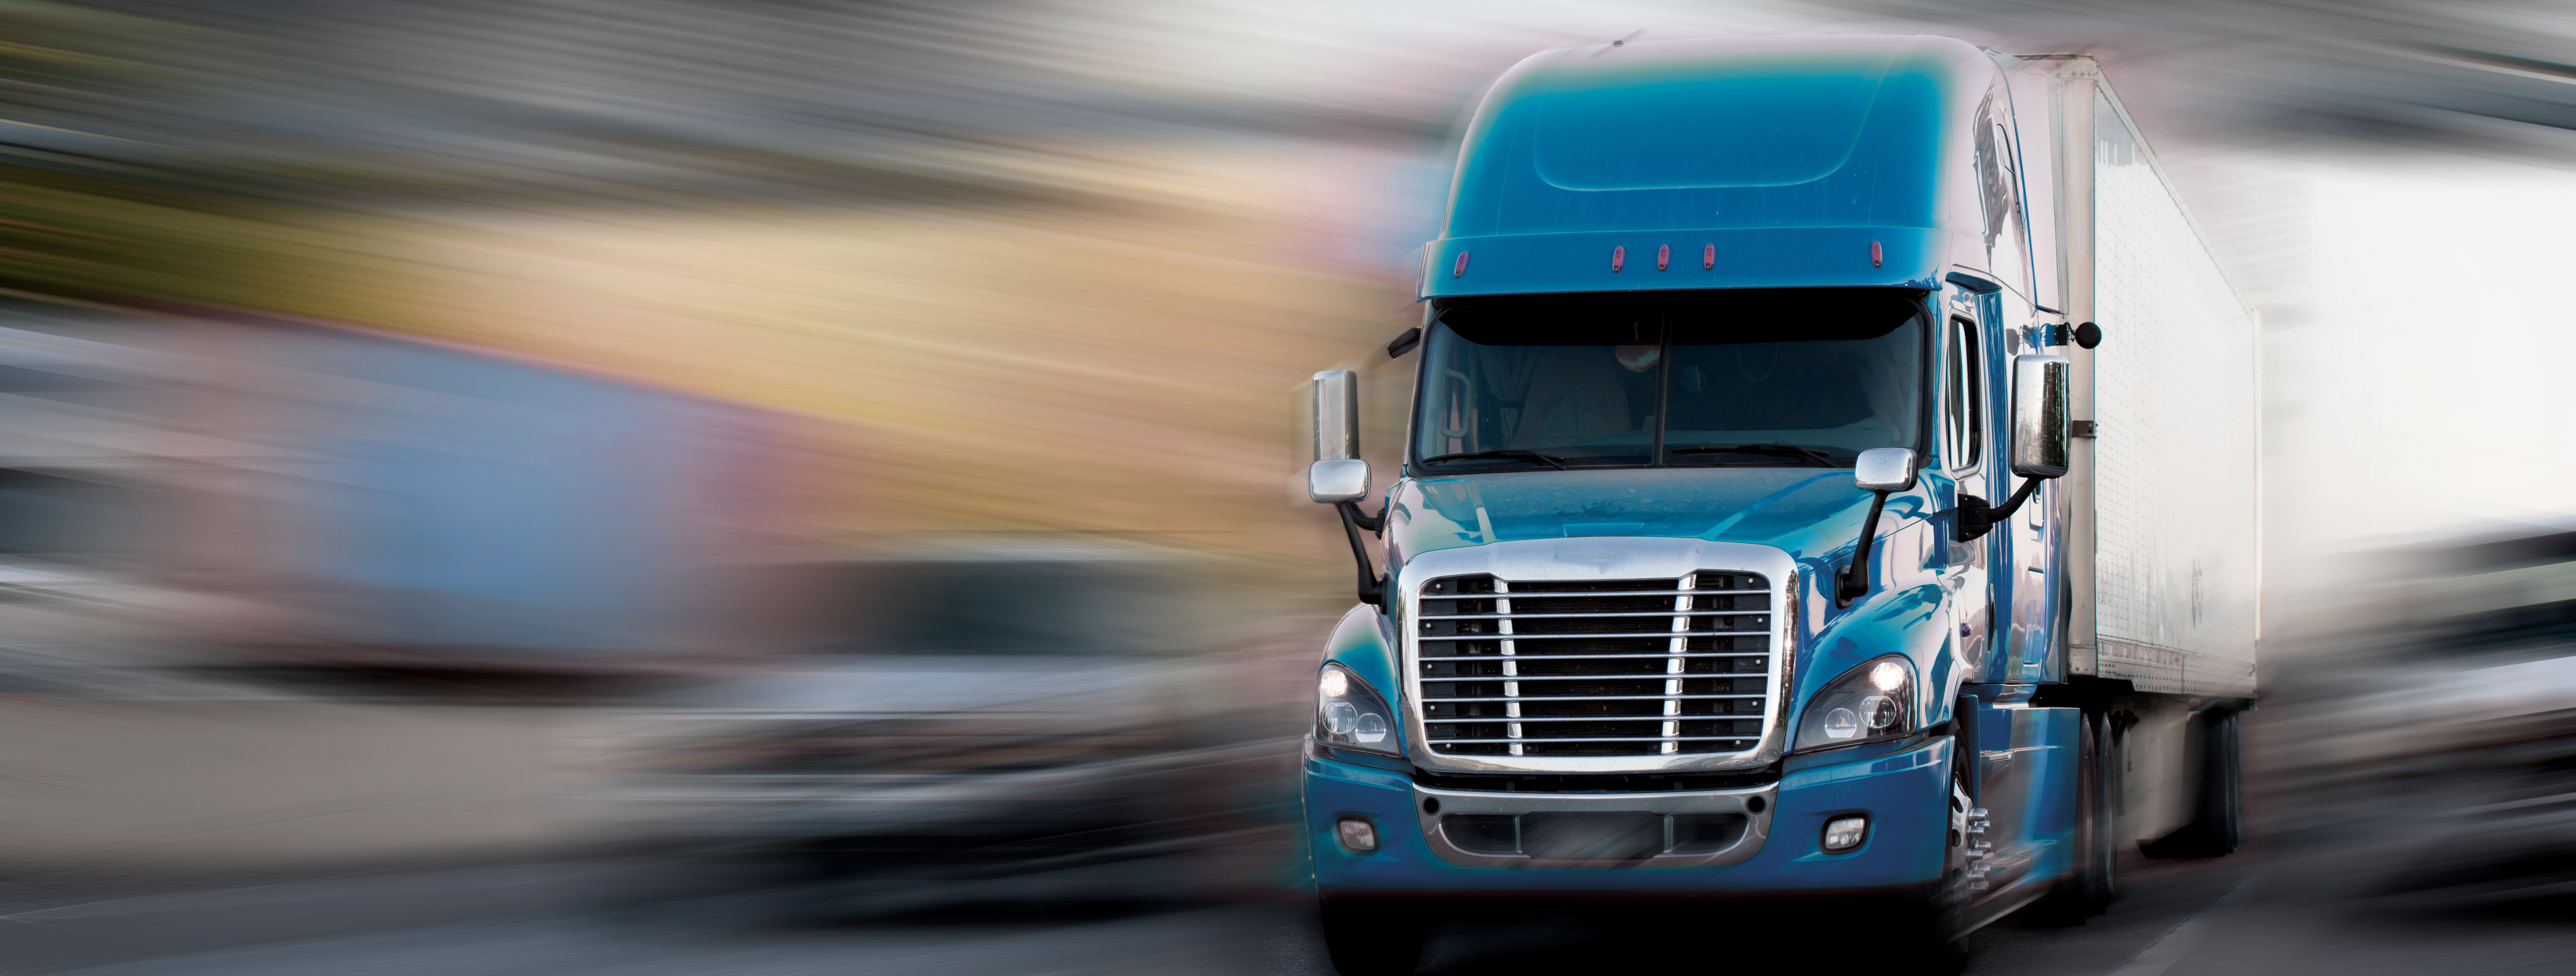 Trucking Tms Software